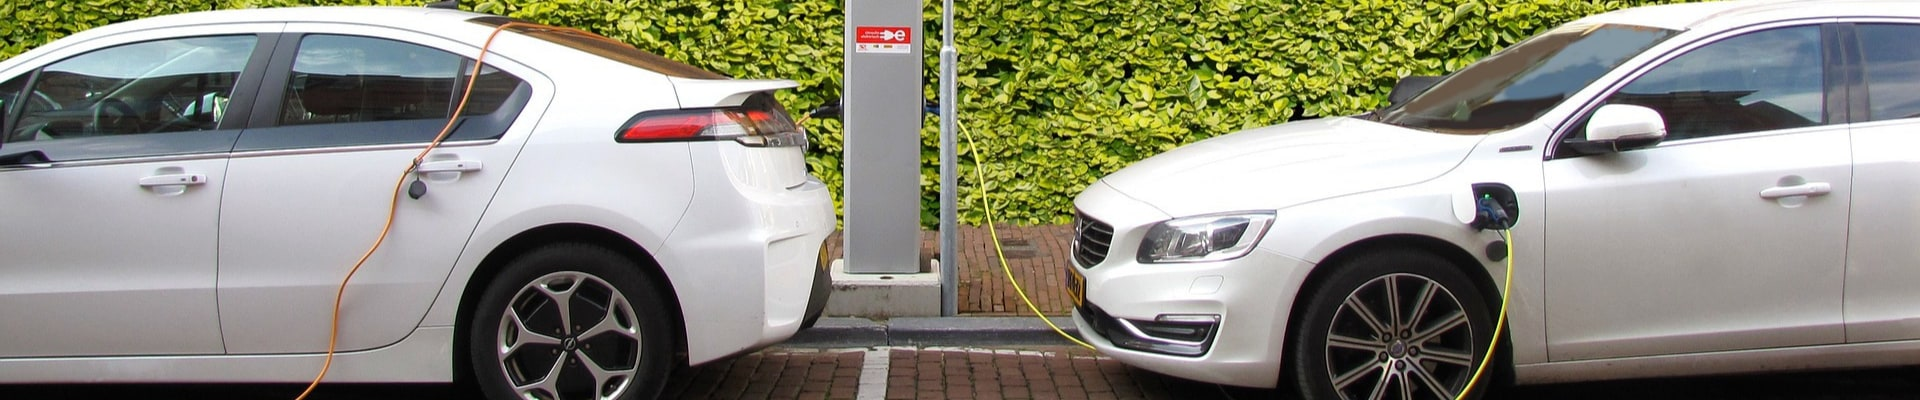 Two used plug-in hybrid cars parked side by side at a charging station